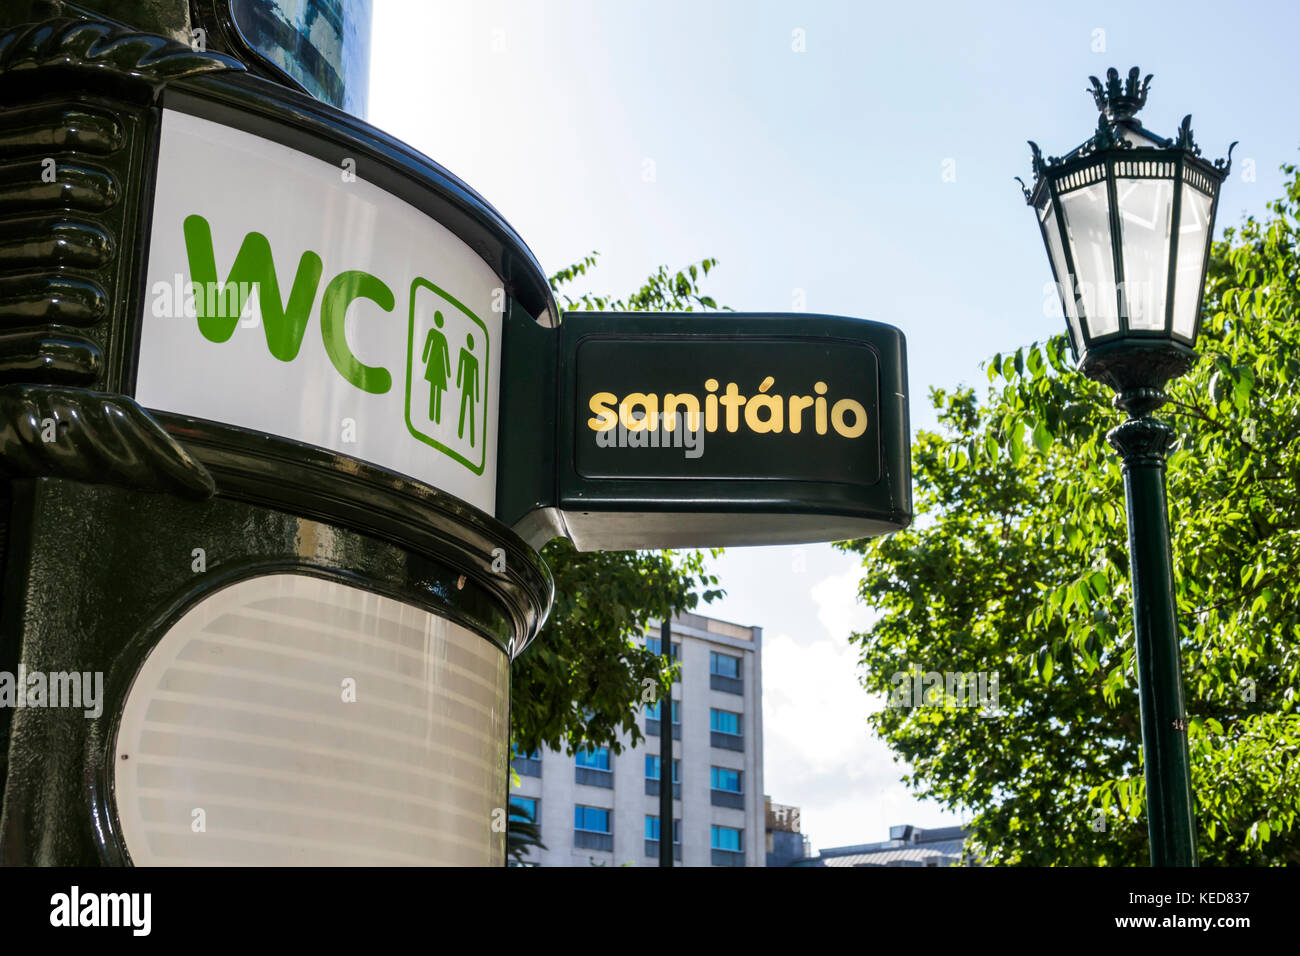 Lisbon Portugal Avenida da Liberdade pedestrian promenade public washroom pay bathroom water closet WC - Stock Image